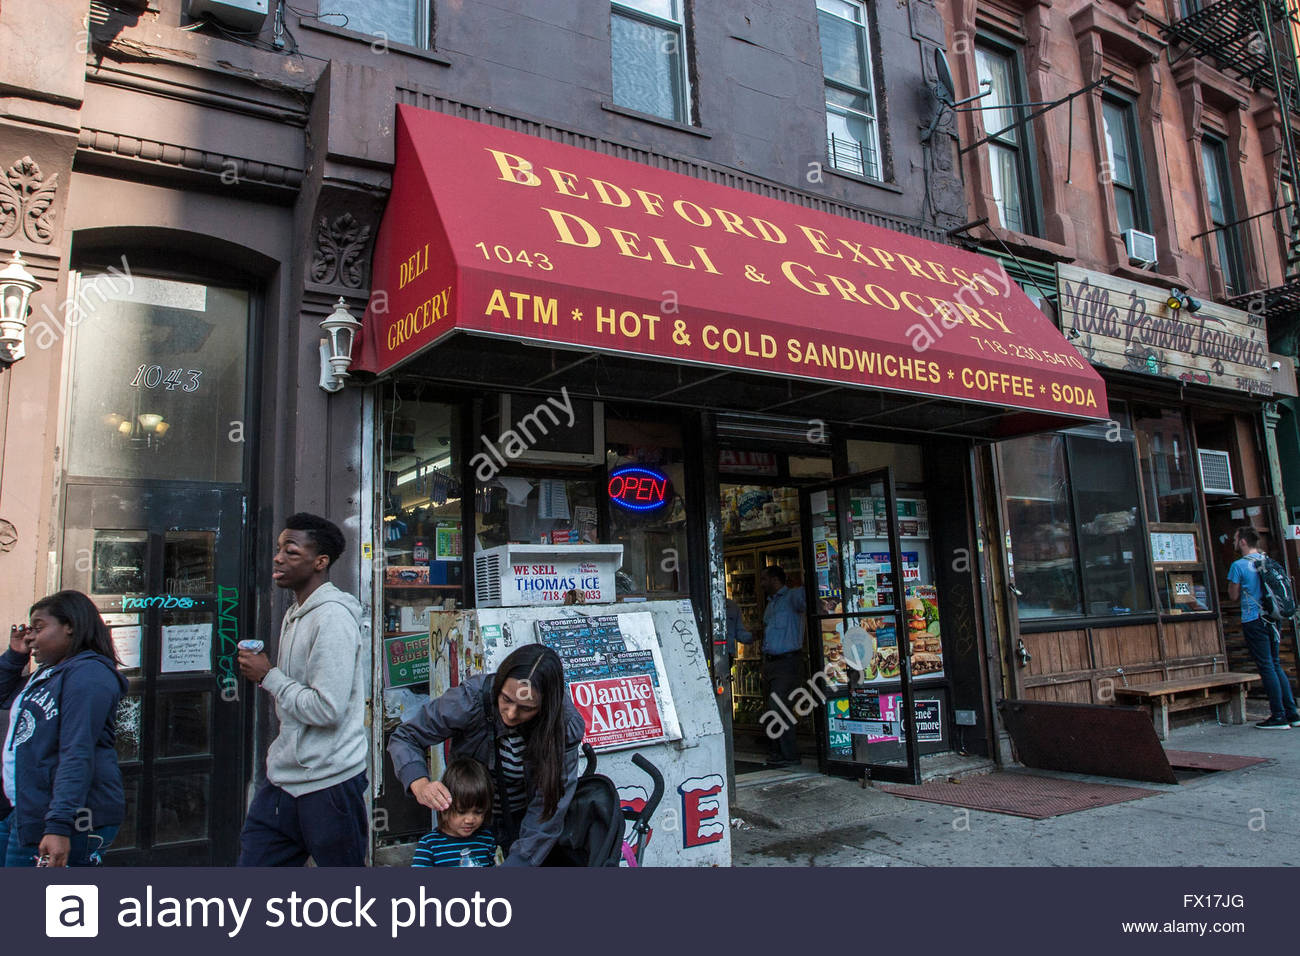 Deli Grocery New York Deli Stock Photos Amp Deli Grocery New